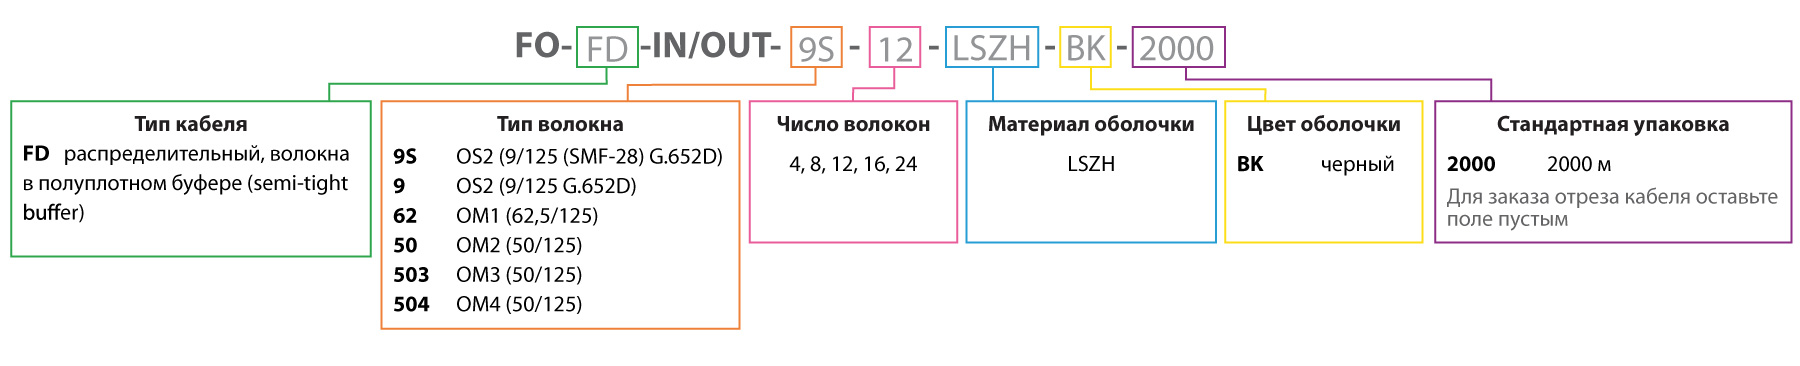 Кабель Hyperline FD IN/OUT